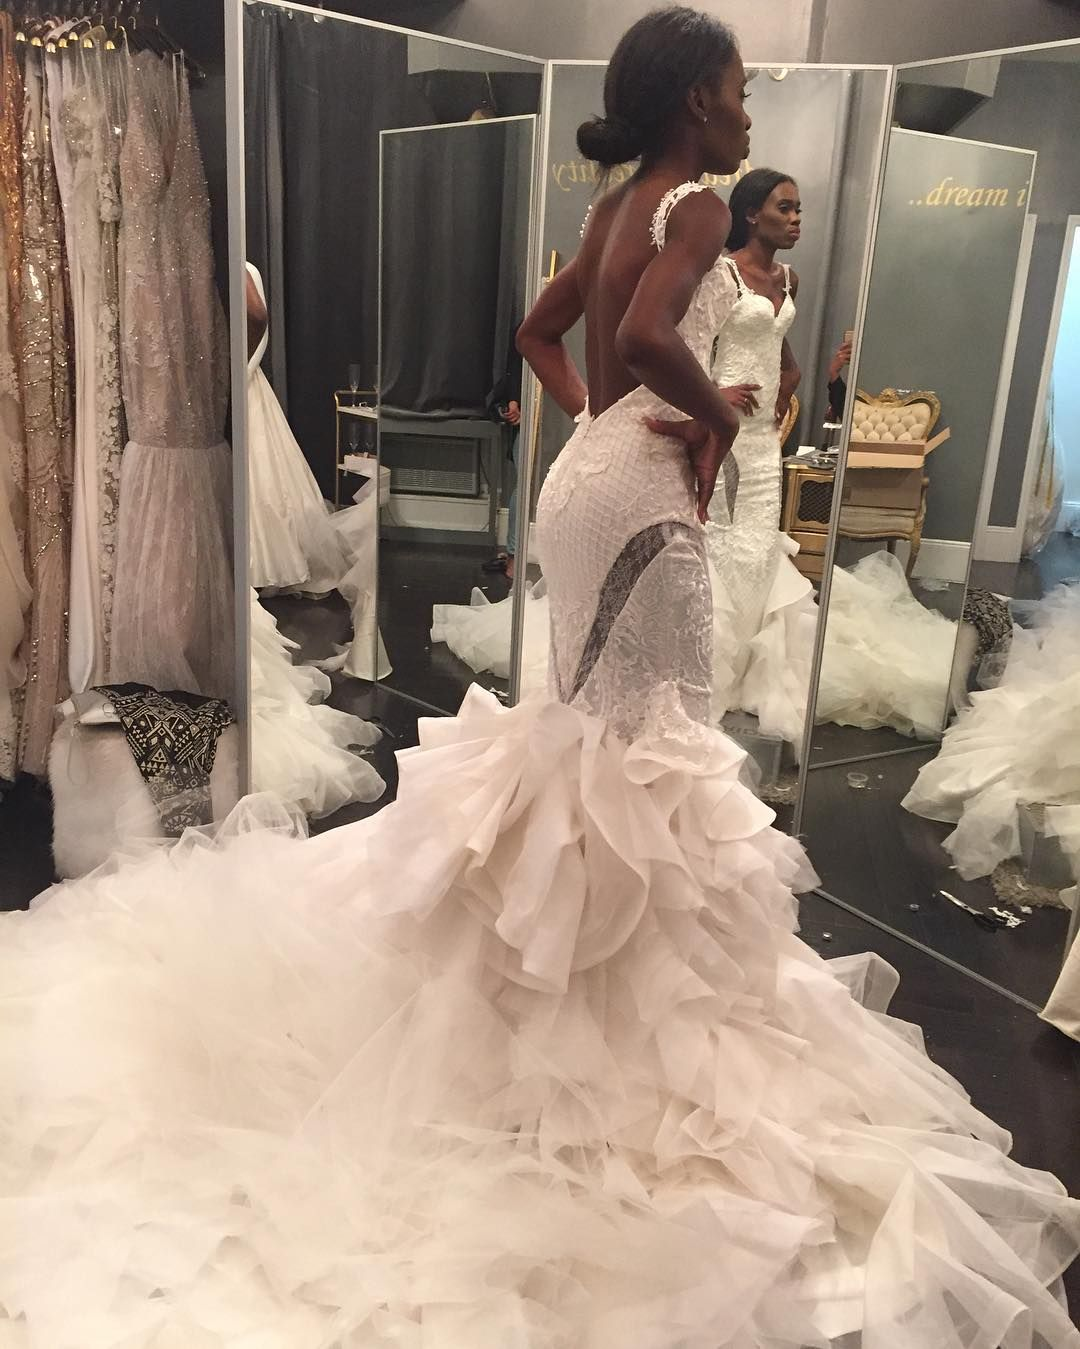 Pantora bridal luxury bridal gowns without rules dream in reality